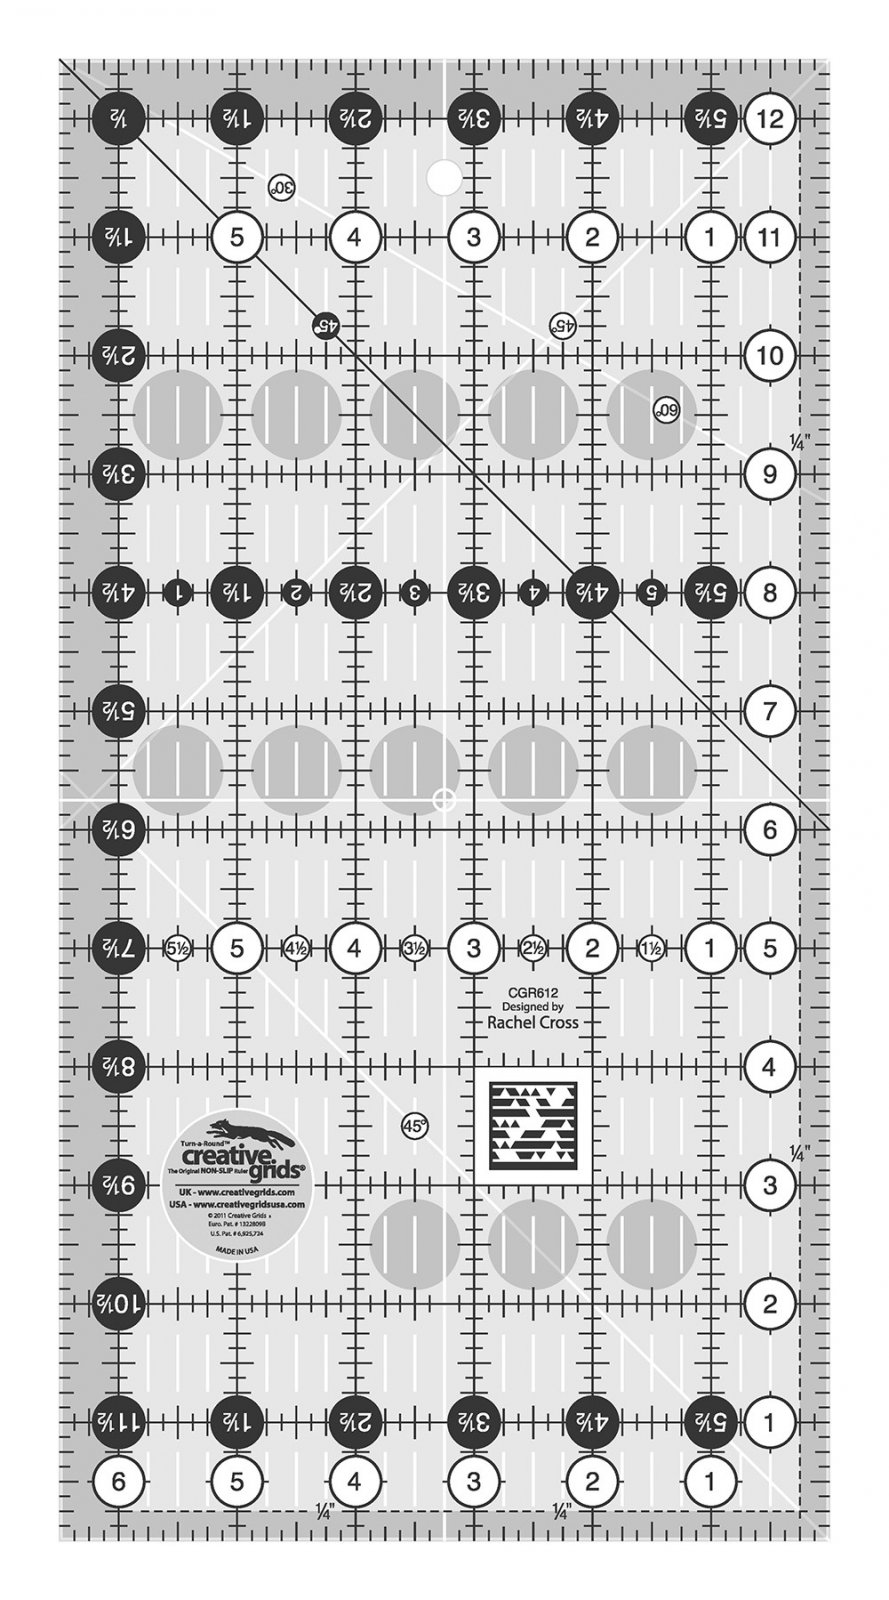 Creative Grids Quilting Ruler 6 1/2in x 12 1/2in